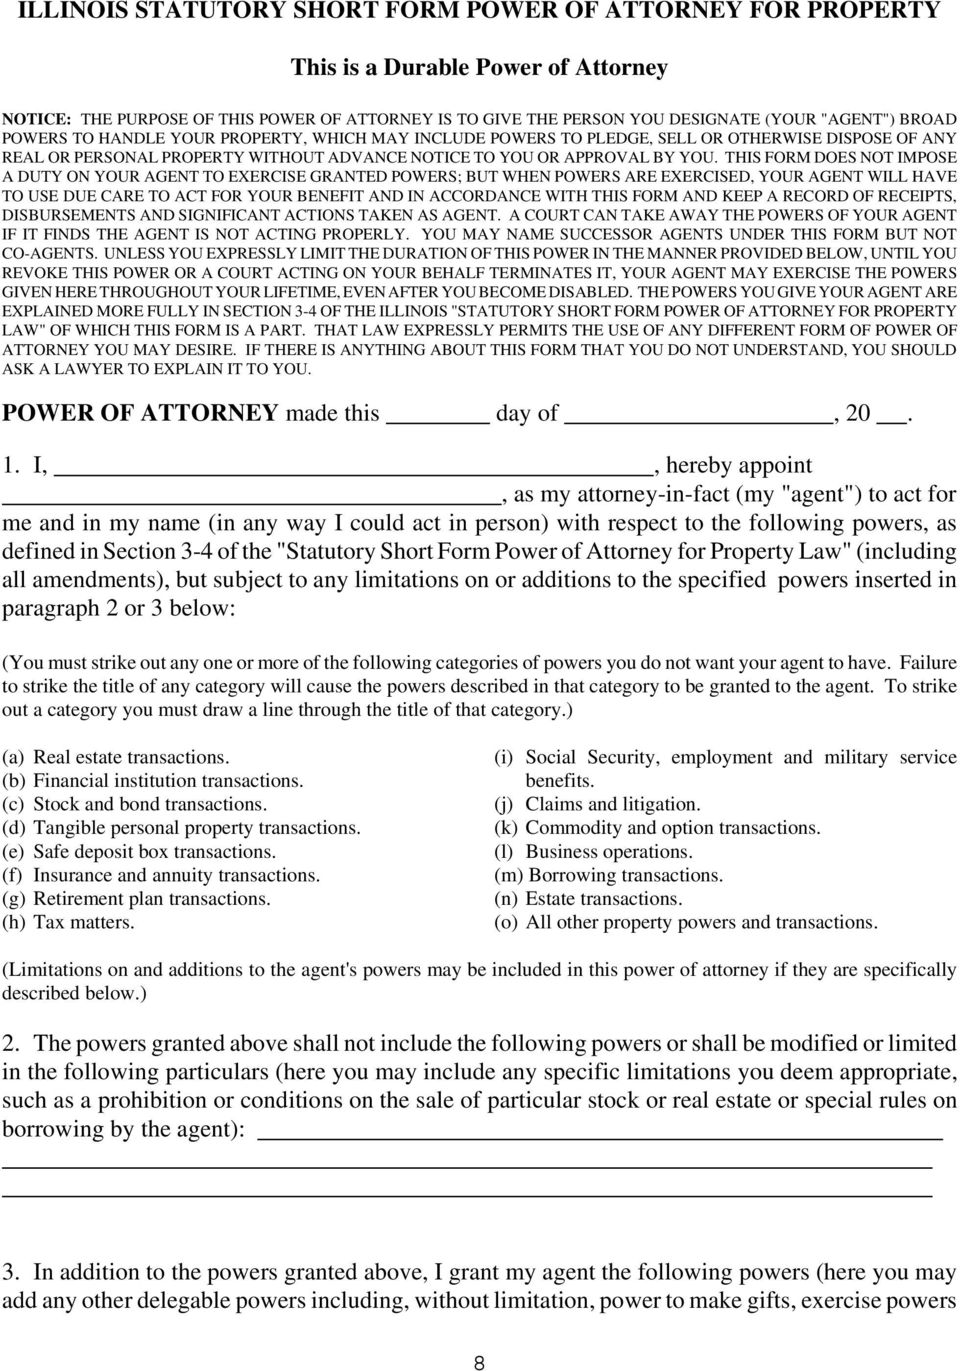 THIS FORM DOES NOT IMPOSE A DUTY ON YOUR AGENT TO EXERCISE GRANTED POWERS; BUT WHEN POWERS ARE EXERCISED, YOUR AGENT WILL HAVE TO USE DUE CARE TO ACT FOR YOUR BENEFIT AND IN ACCORDANCE WITH THIS FORM